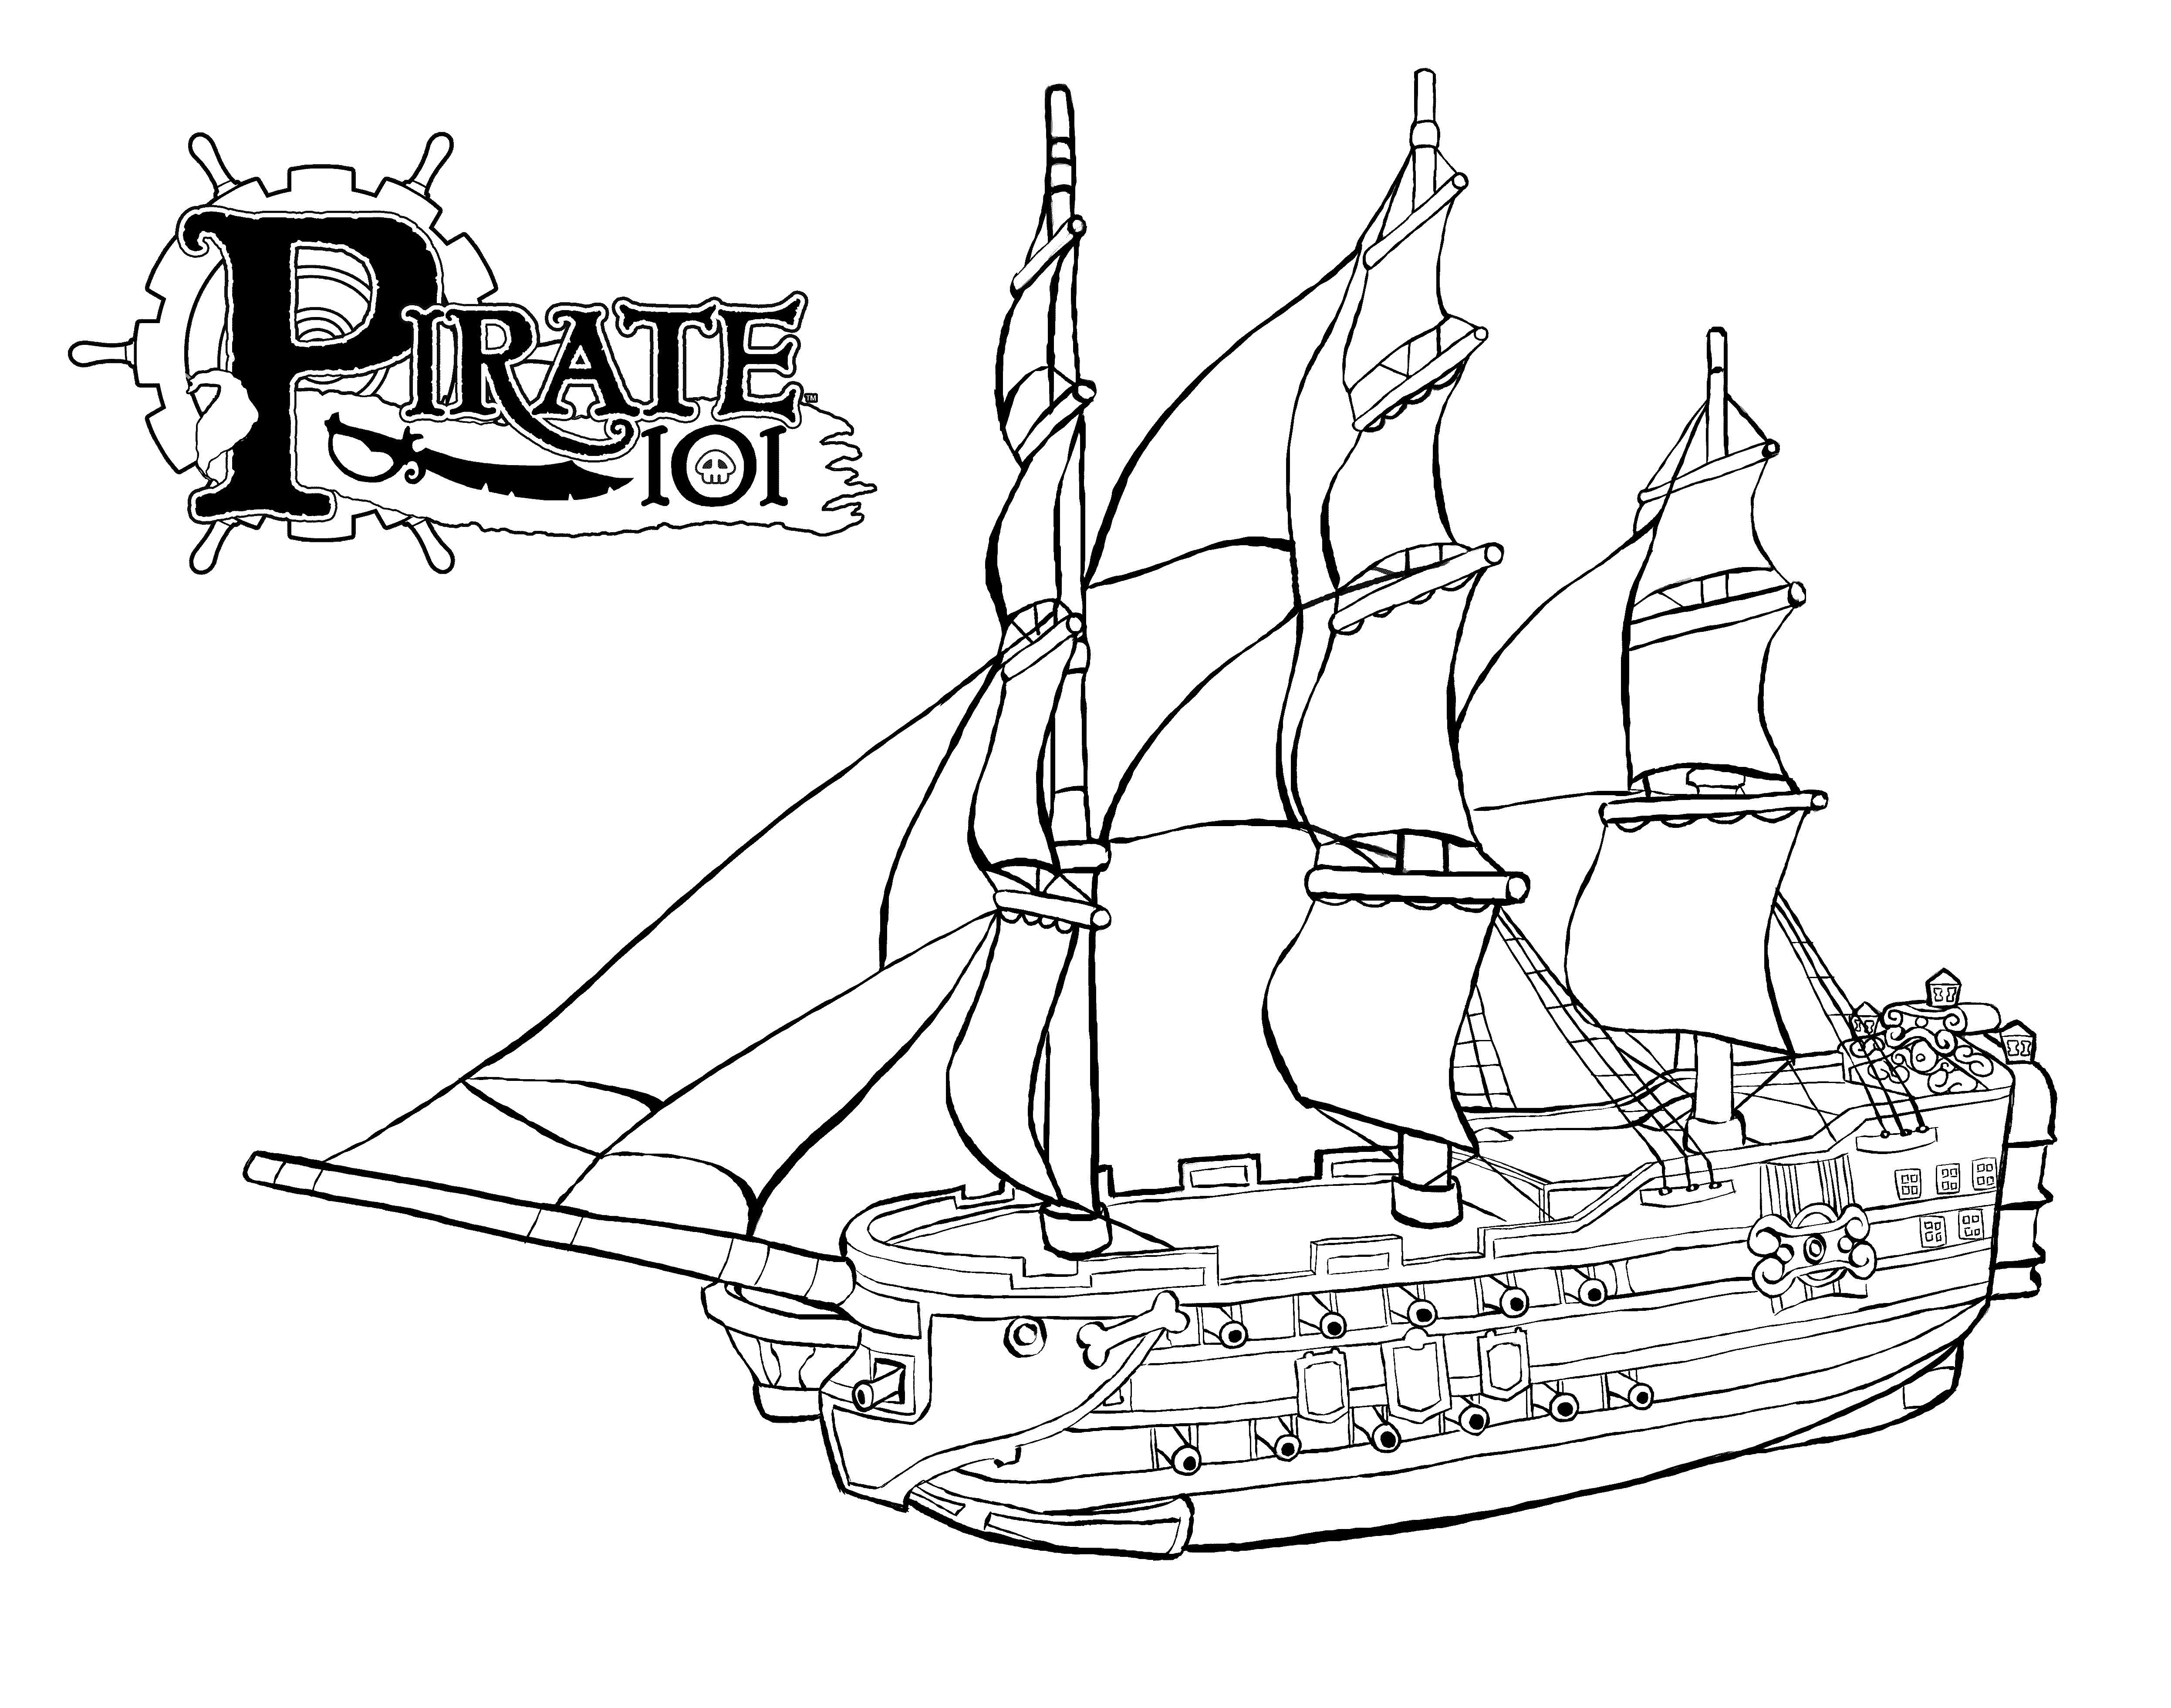 pirate images to color pirate coloring pages pirate101 free online game pirate color images to